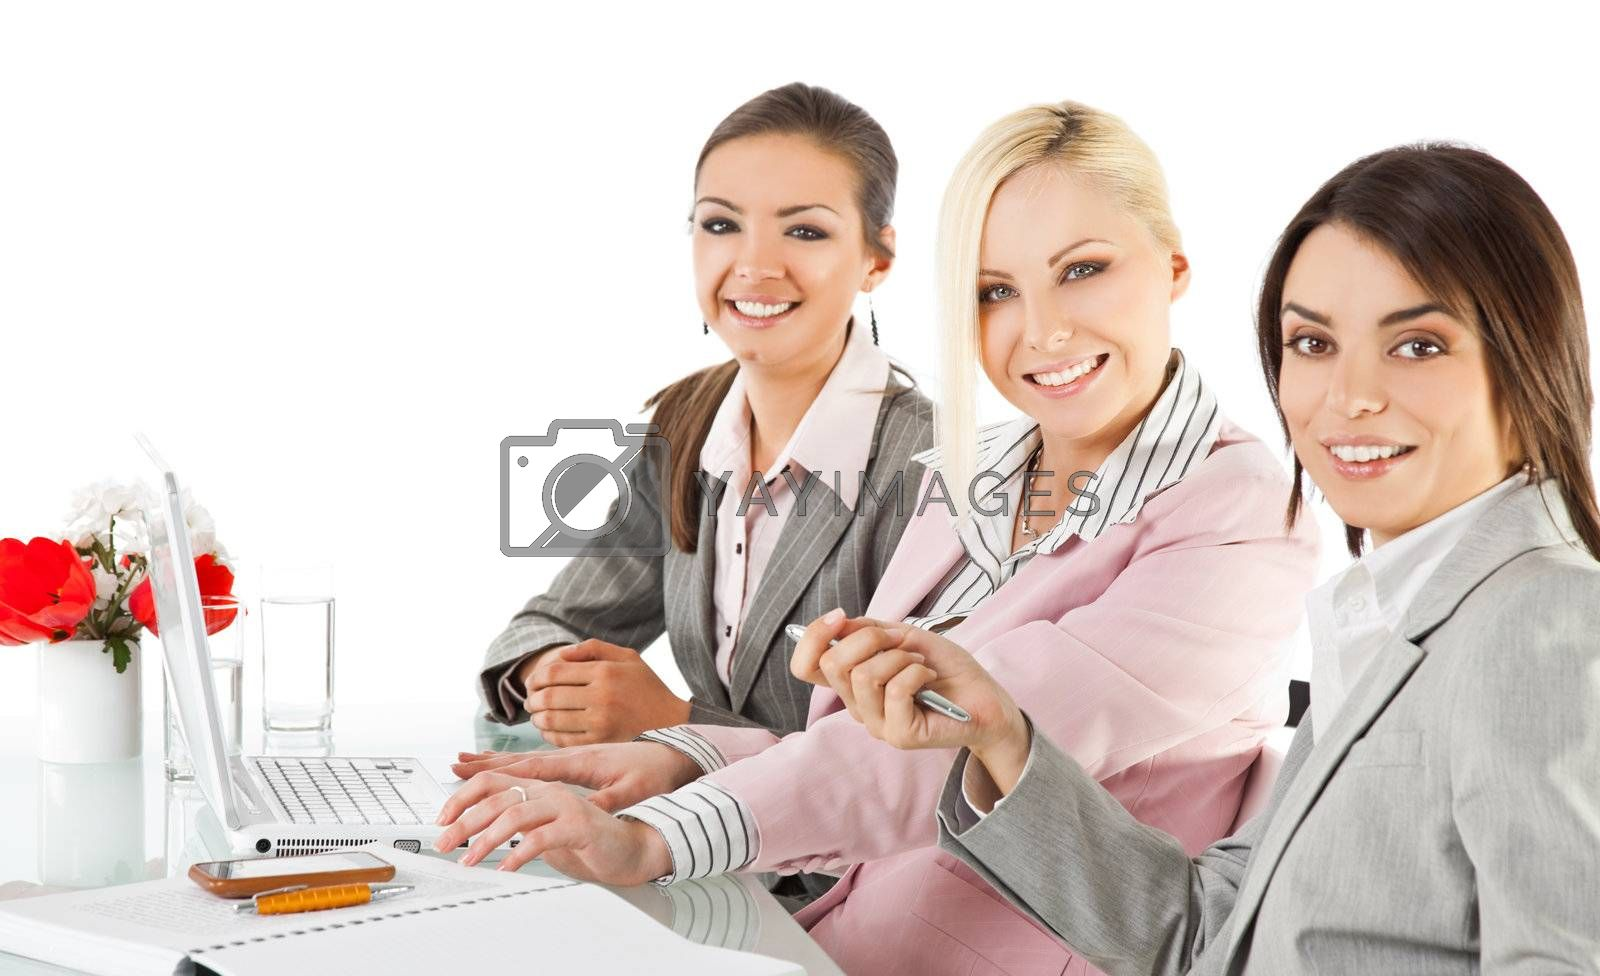 Group of three happy businesswomen working behind desk with laptop, looking at camera